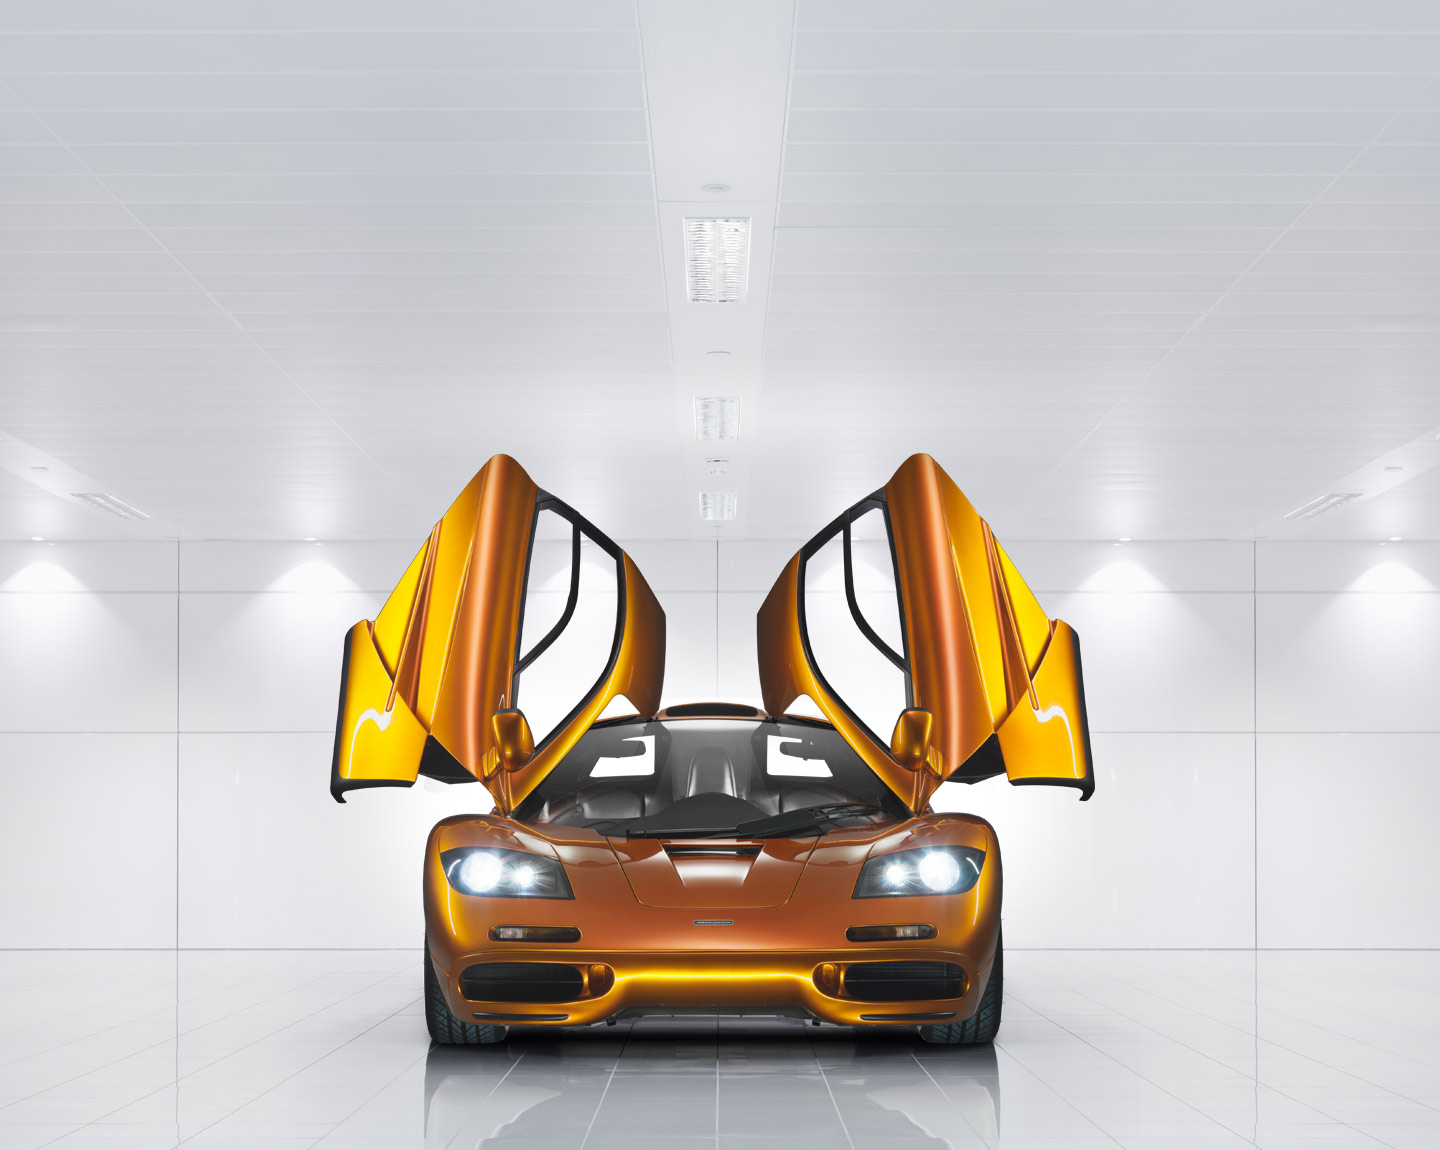 ... the legendary McLaren F1 is a technological masterpiece. The fastest production car of its time. The finest sports car of its generation.